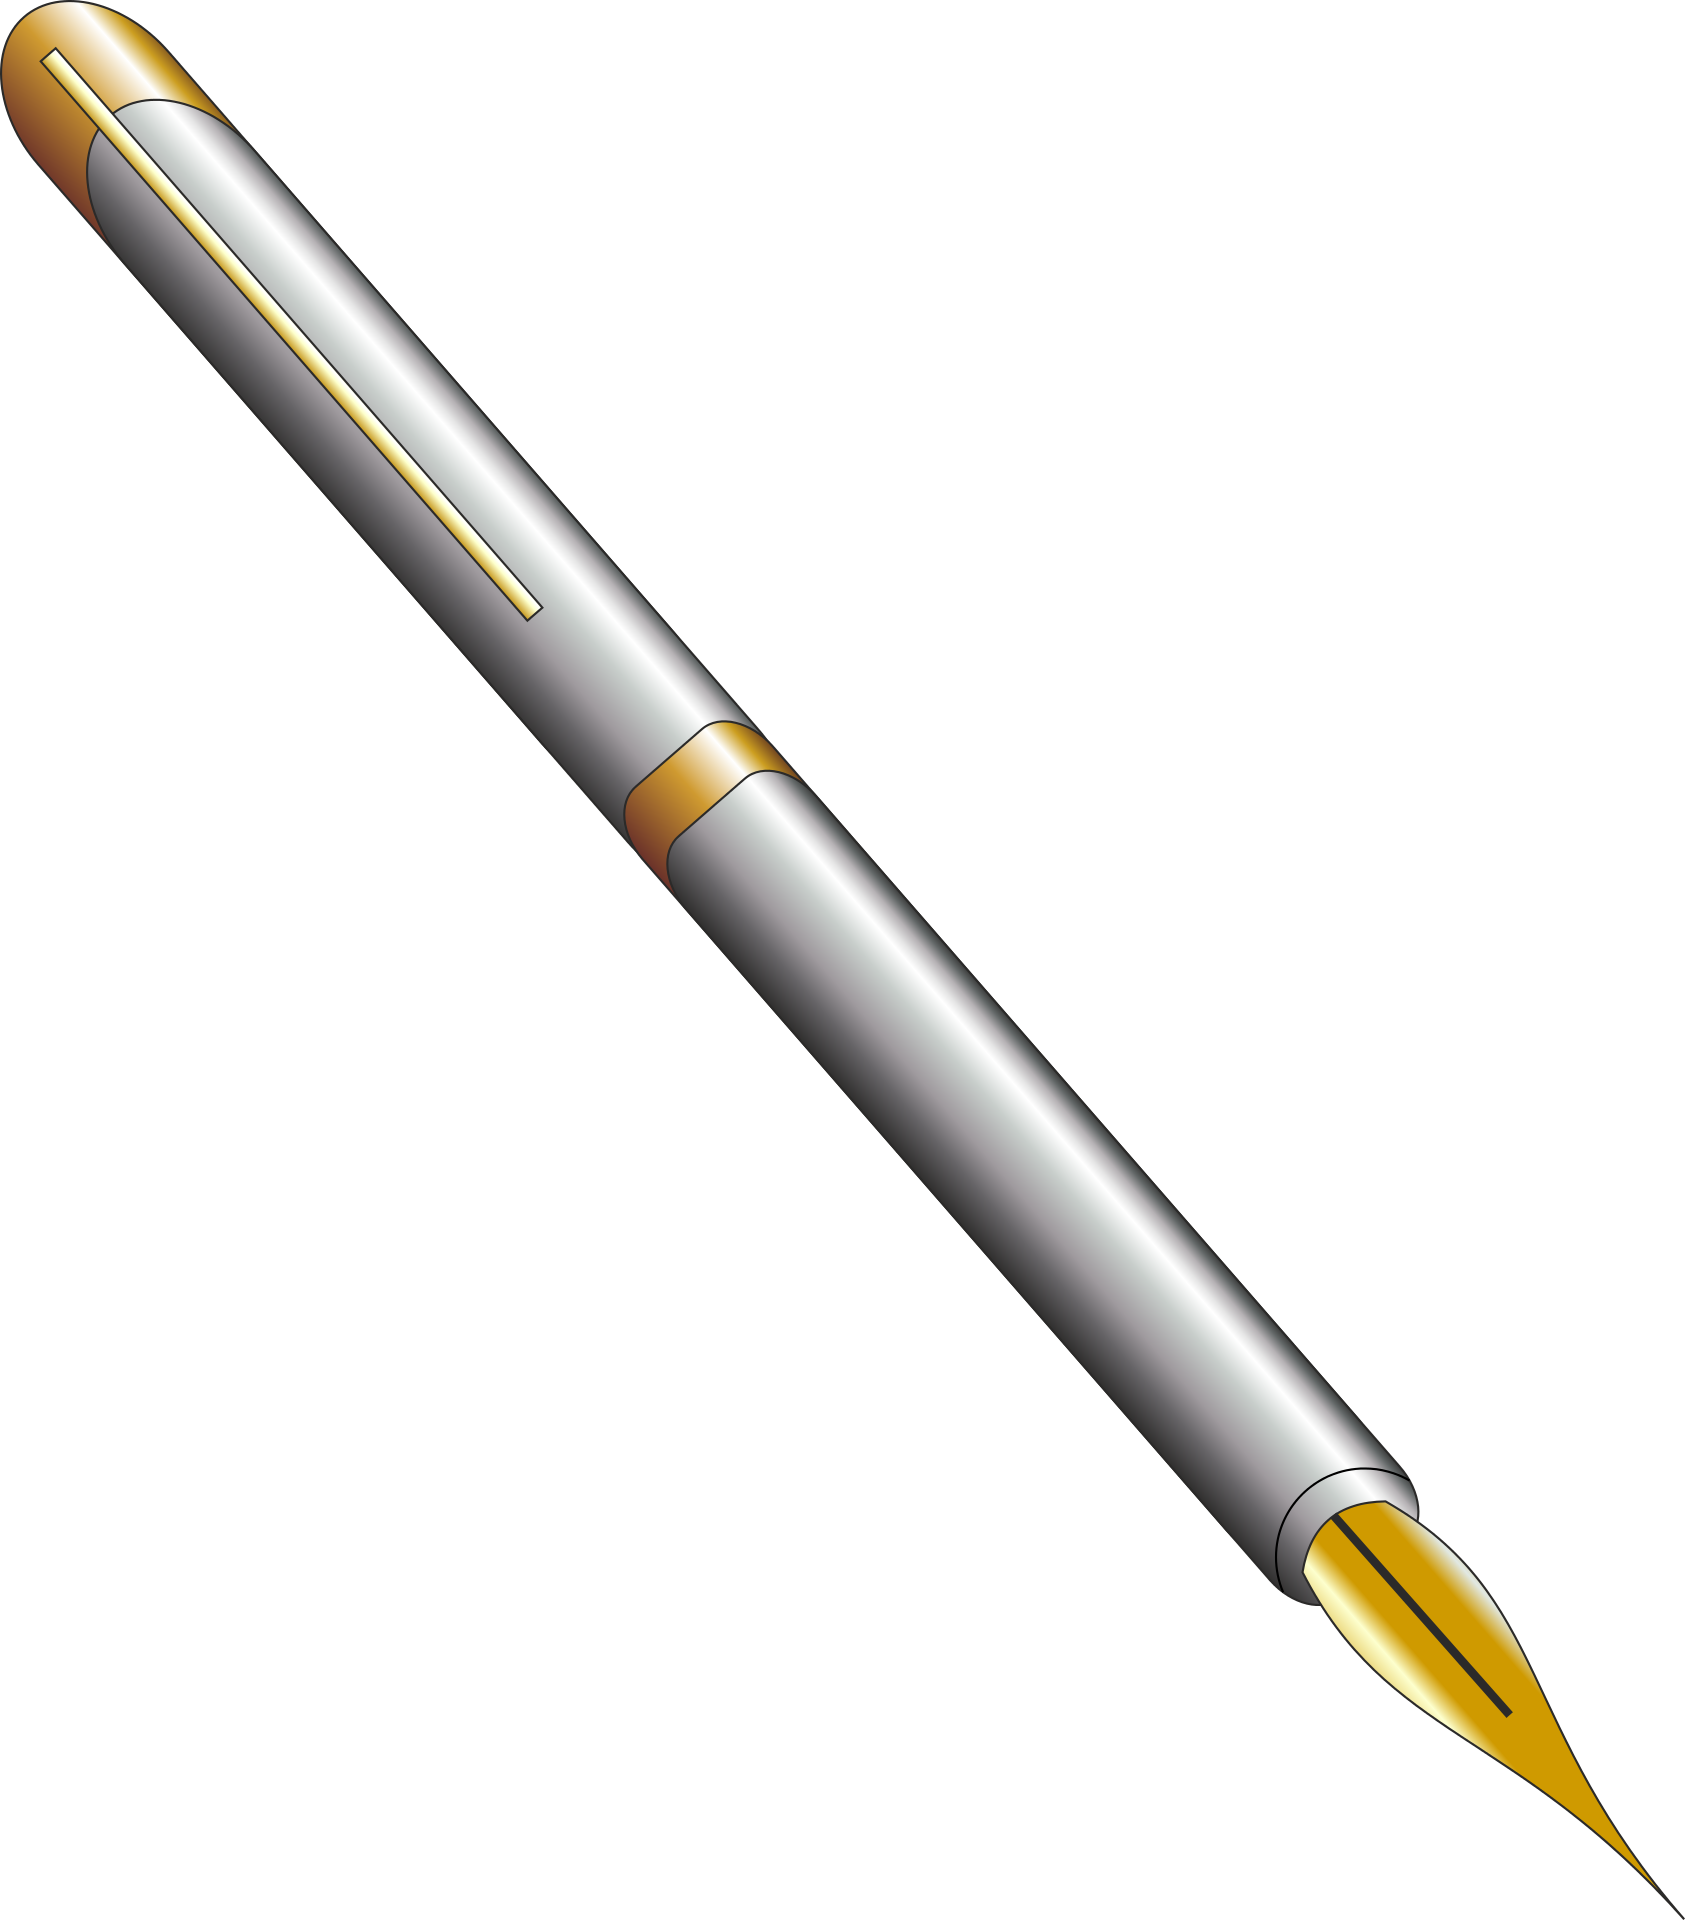 FileFountain Pen Graphicpng Wikimedia Commons : FountainPenGraphic from commons.wikimedia.org size 1685 x 1920 png 304kB